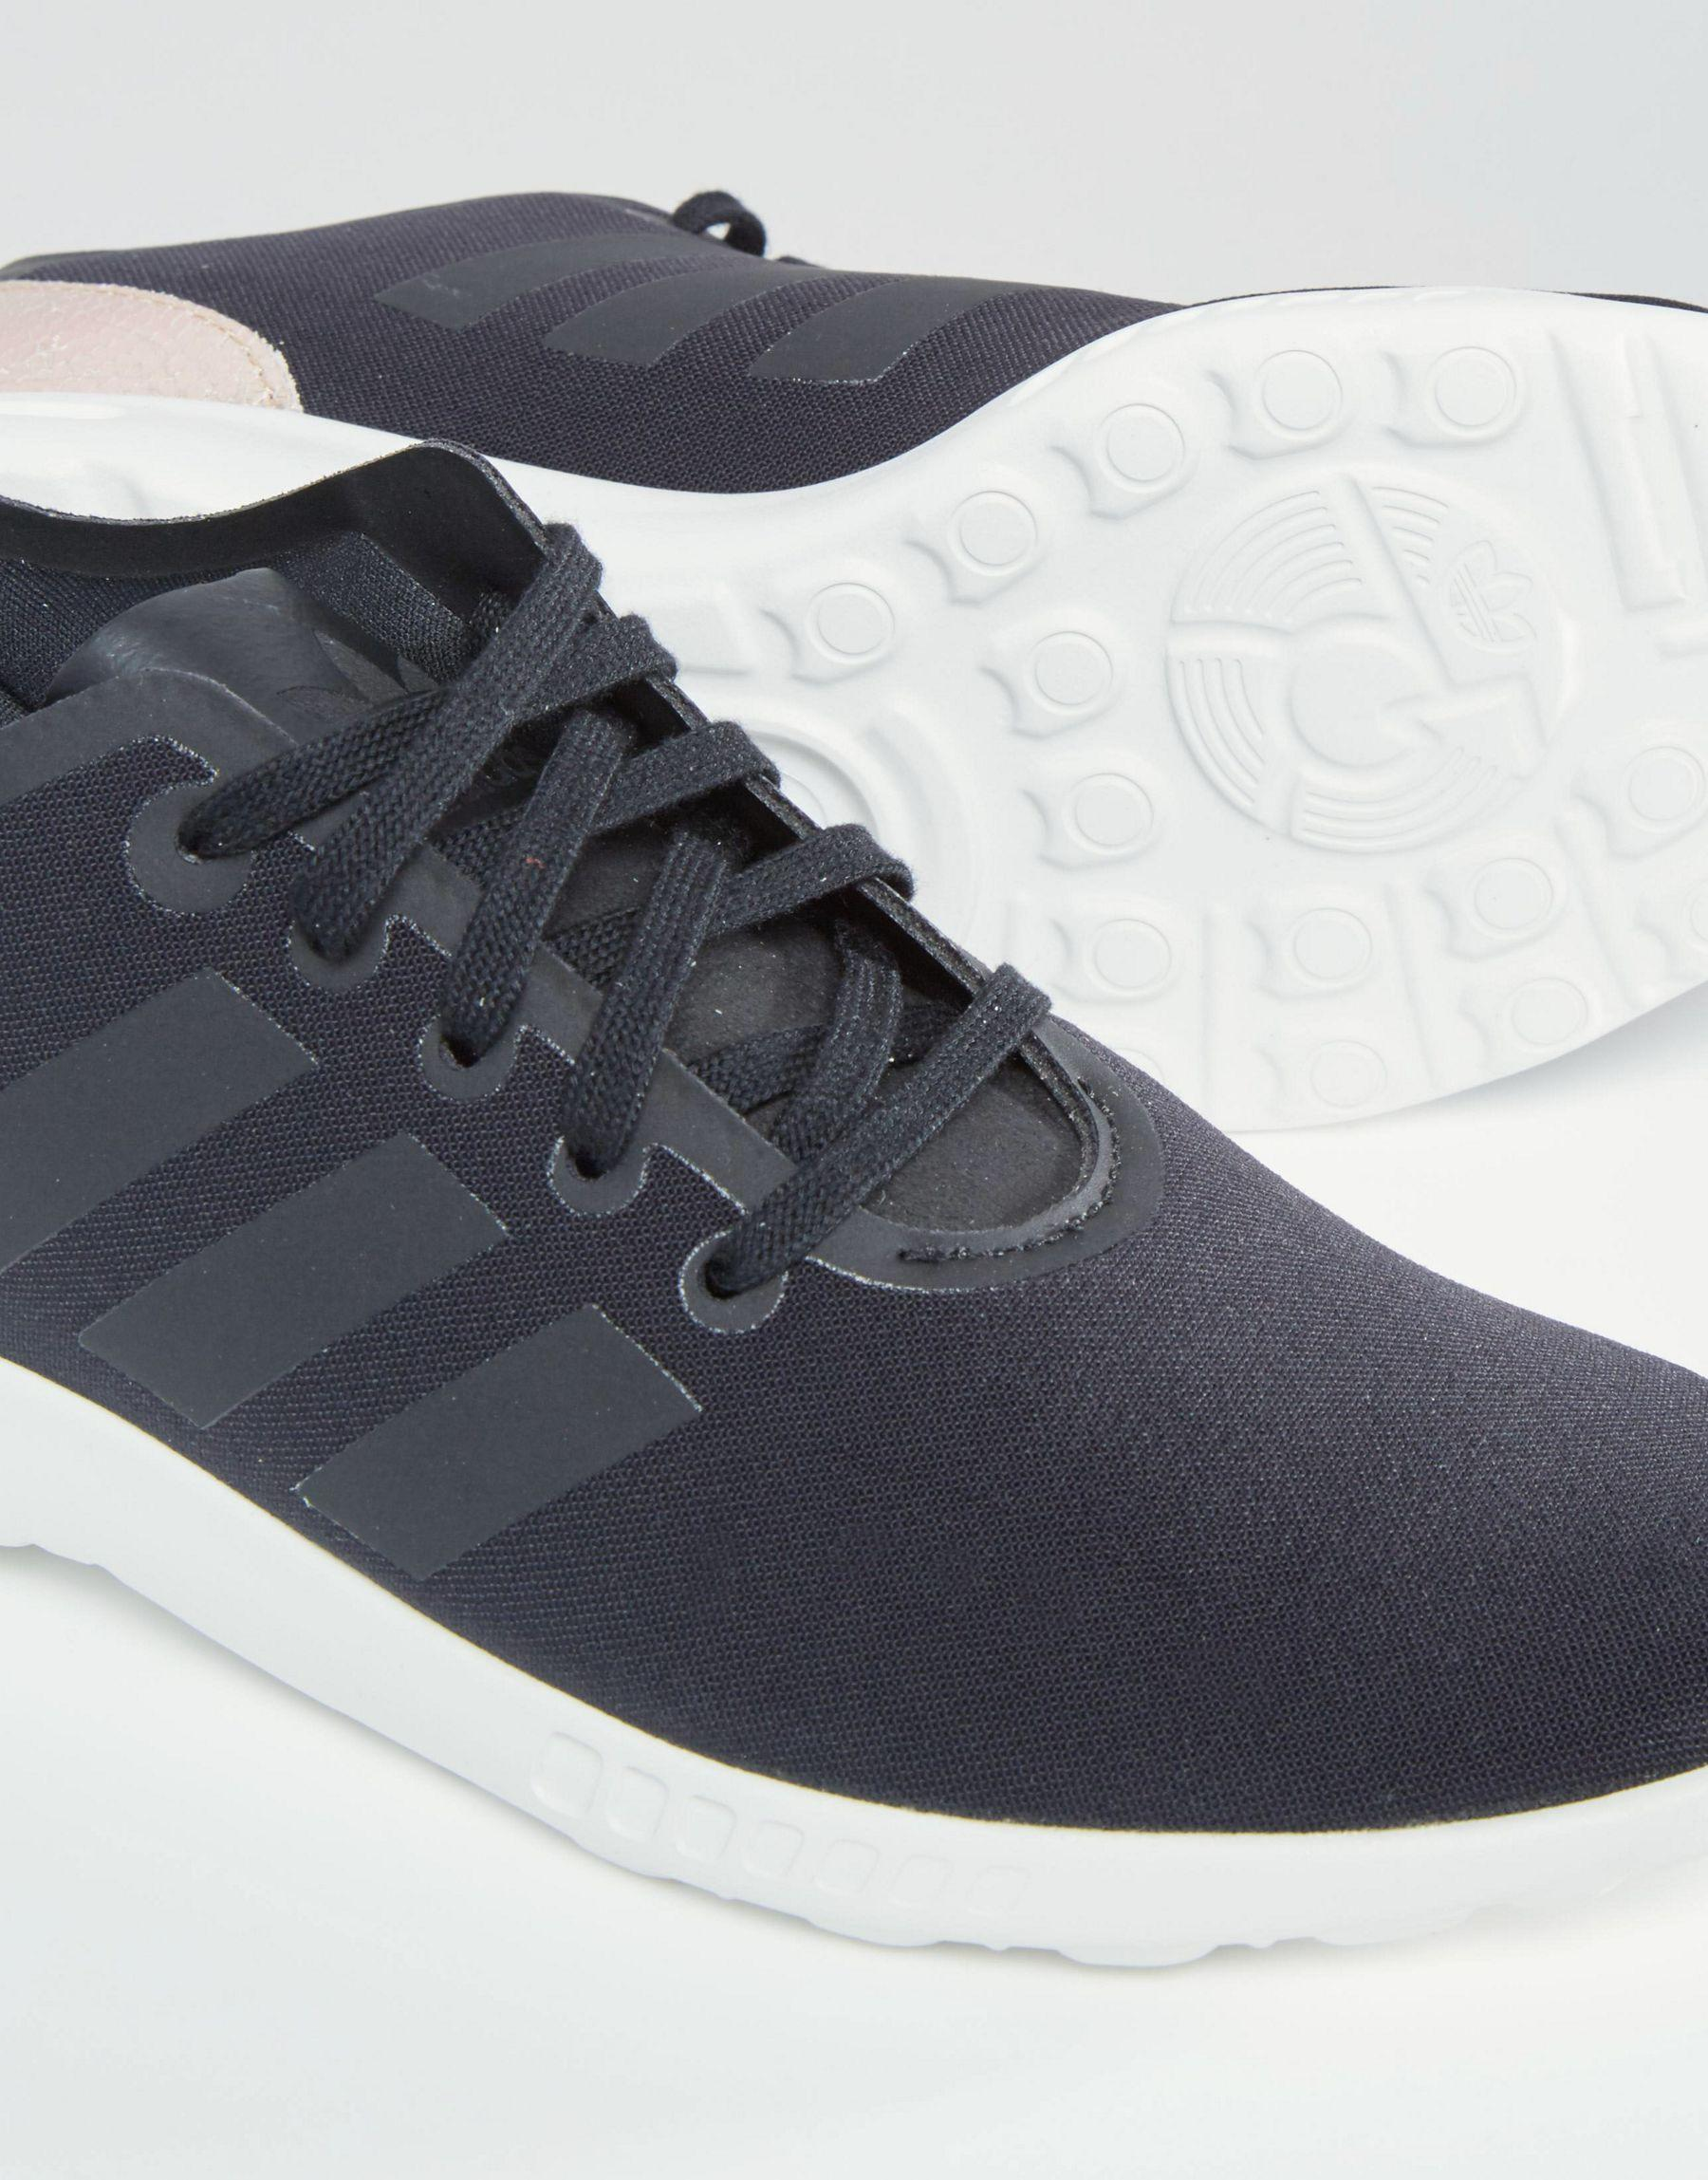 sports shoes 0fdd8 4be29 promo code for adidas originals zx flux sneakers black and ...